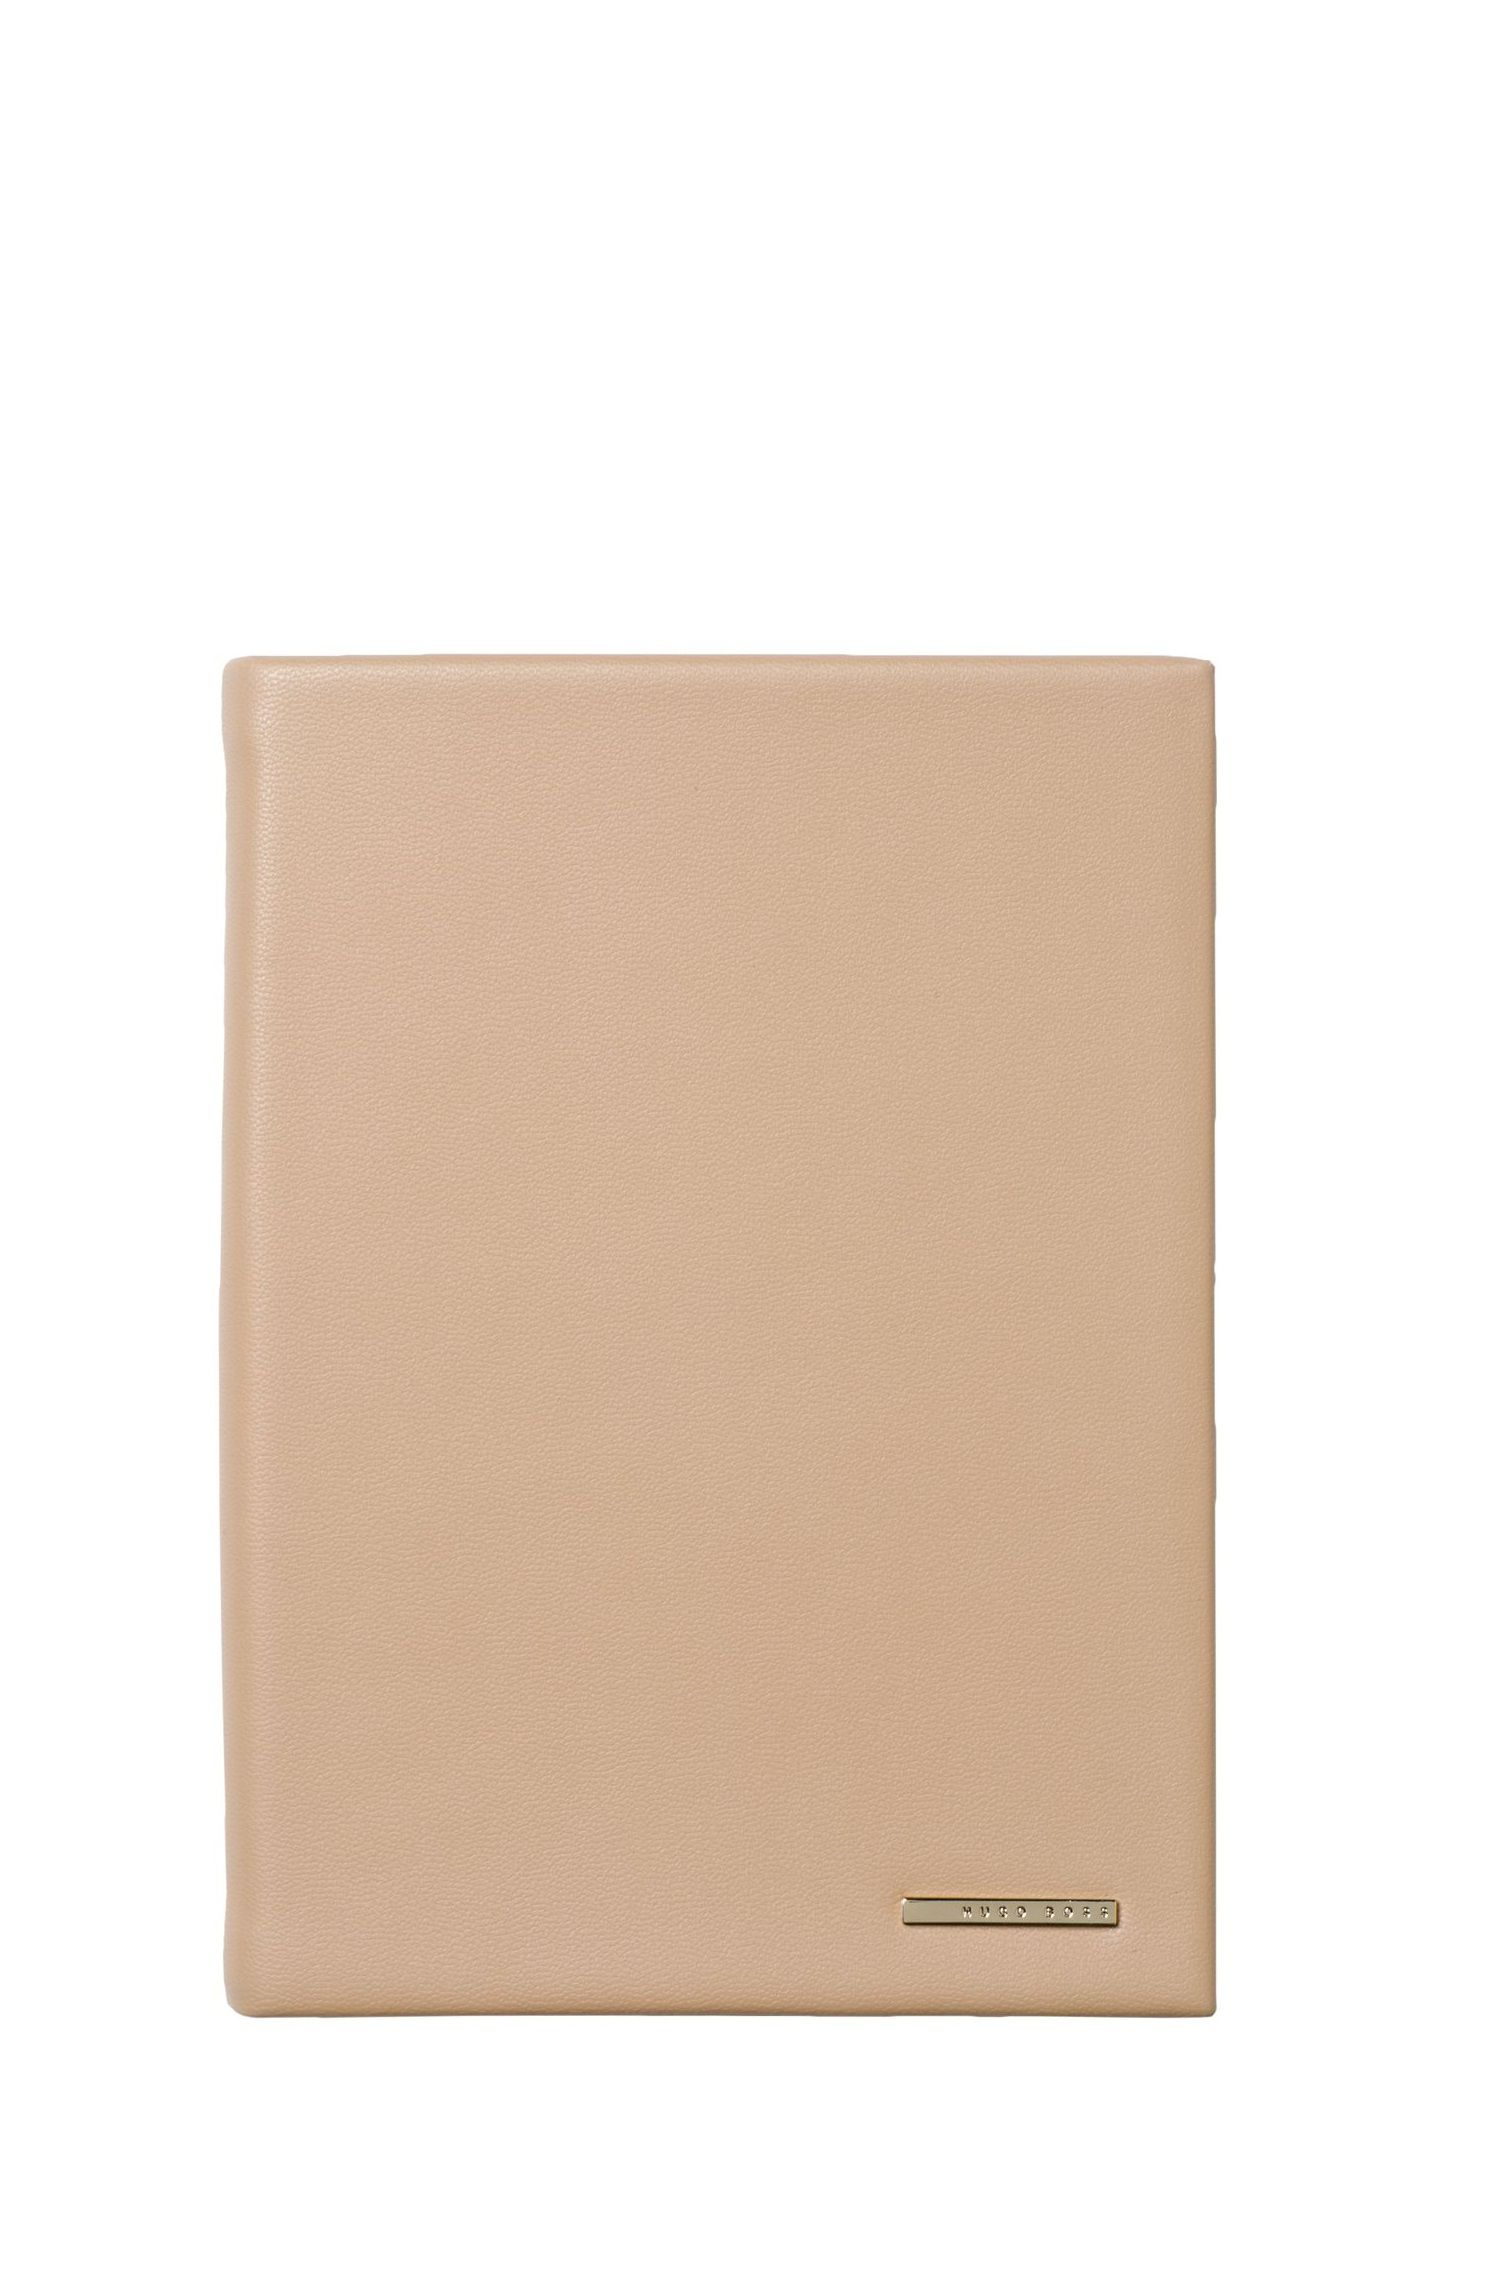 A6 notebook with nude faux-leather case and logo plate, Beige